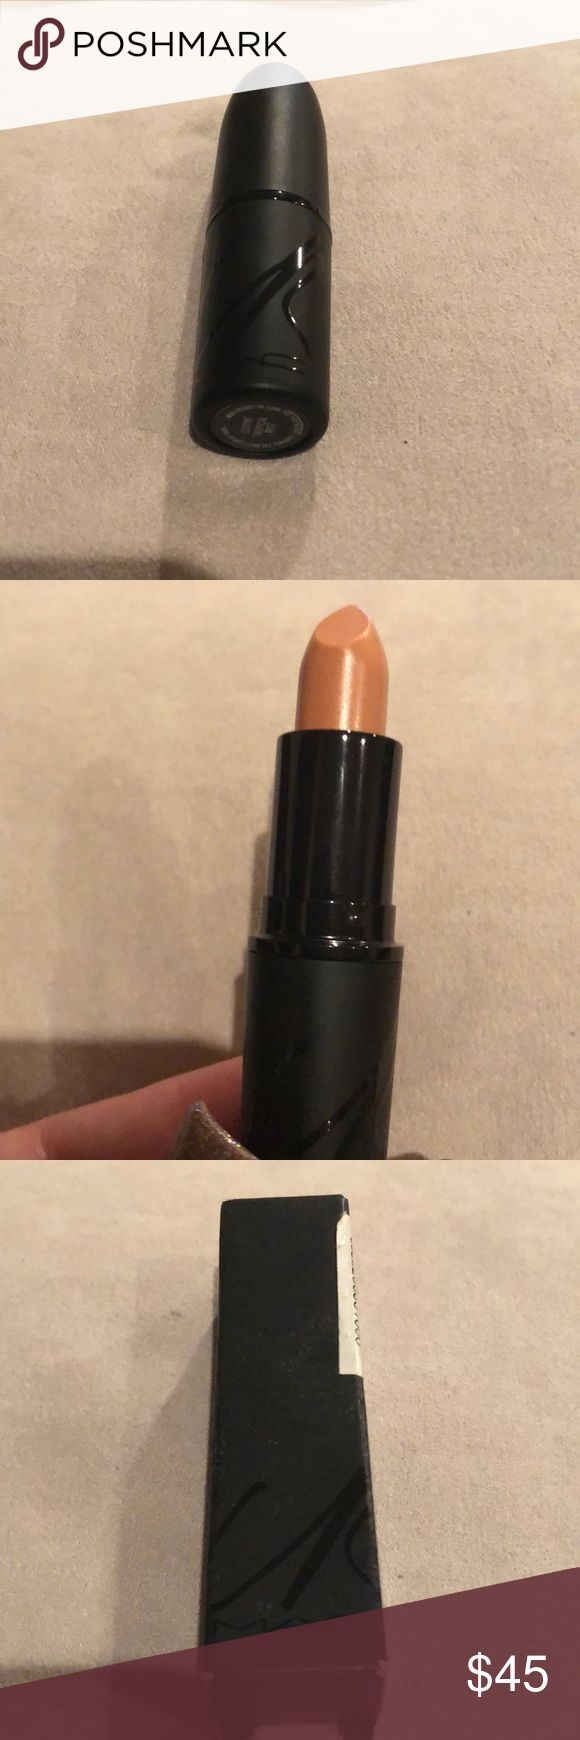 MAC & Carine Roitfeld: Tropical Mist Lipstick LE MAC & Carine Roitfeld: Tropical Mist Lipstick BNIB  MAC Tropical Mist Lipstick It's a wash of warm beige with a soft, frosted finish. It has a lustre finish. MAC Cosmetics Makeup Lipstick